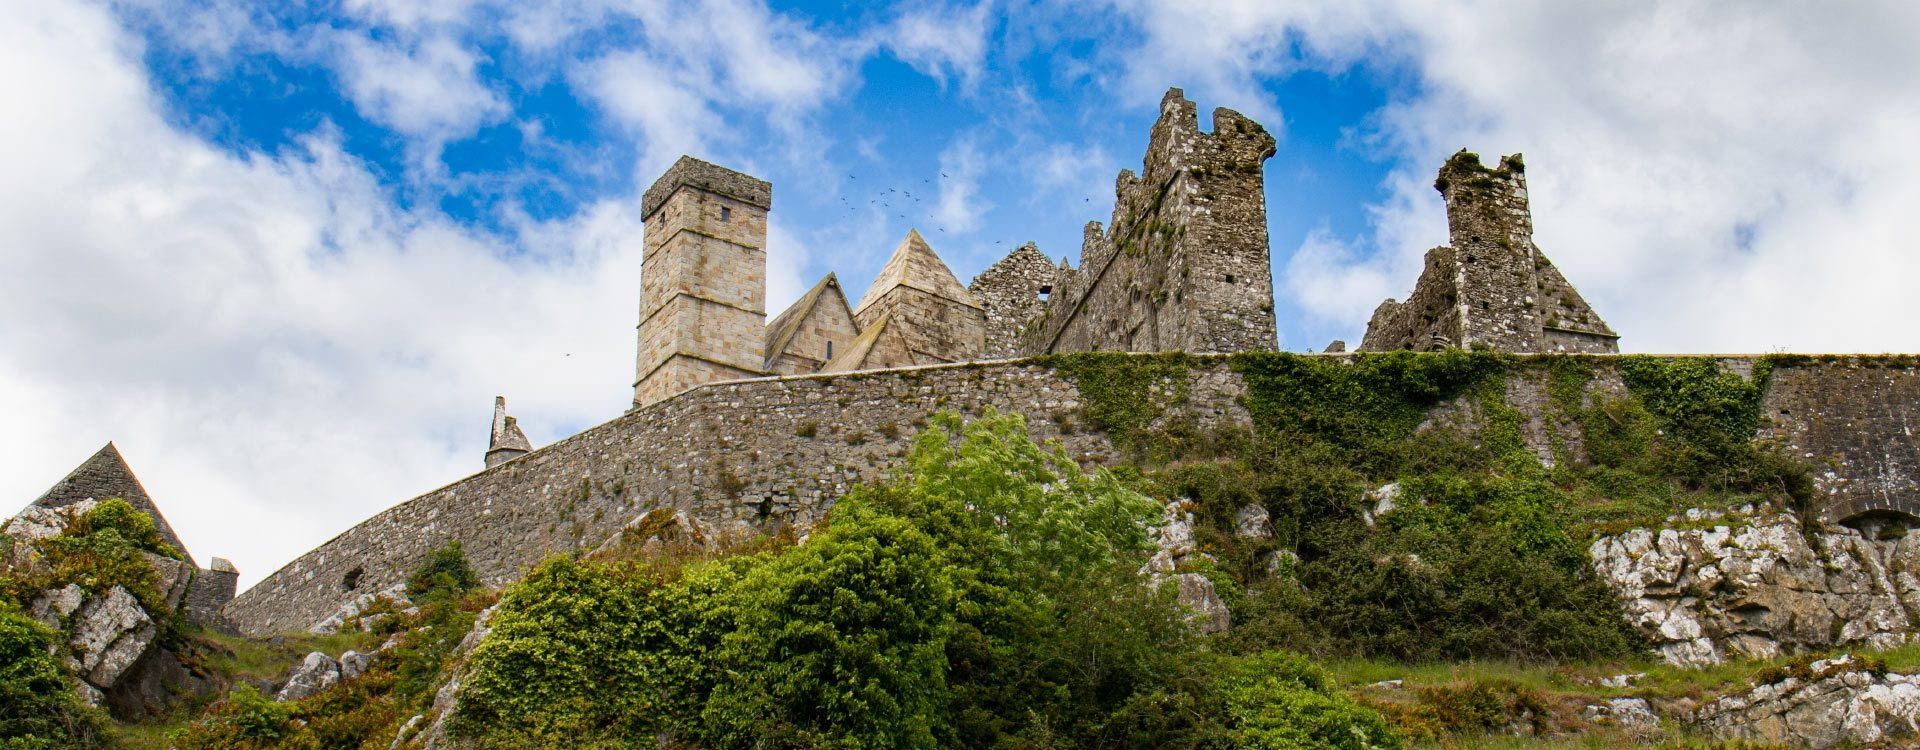 Kilkenny and Cashel Tour from Cork